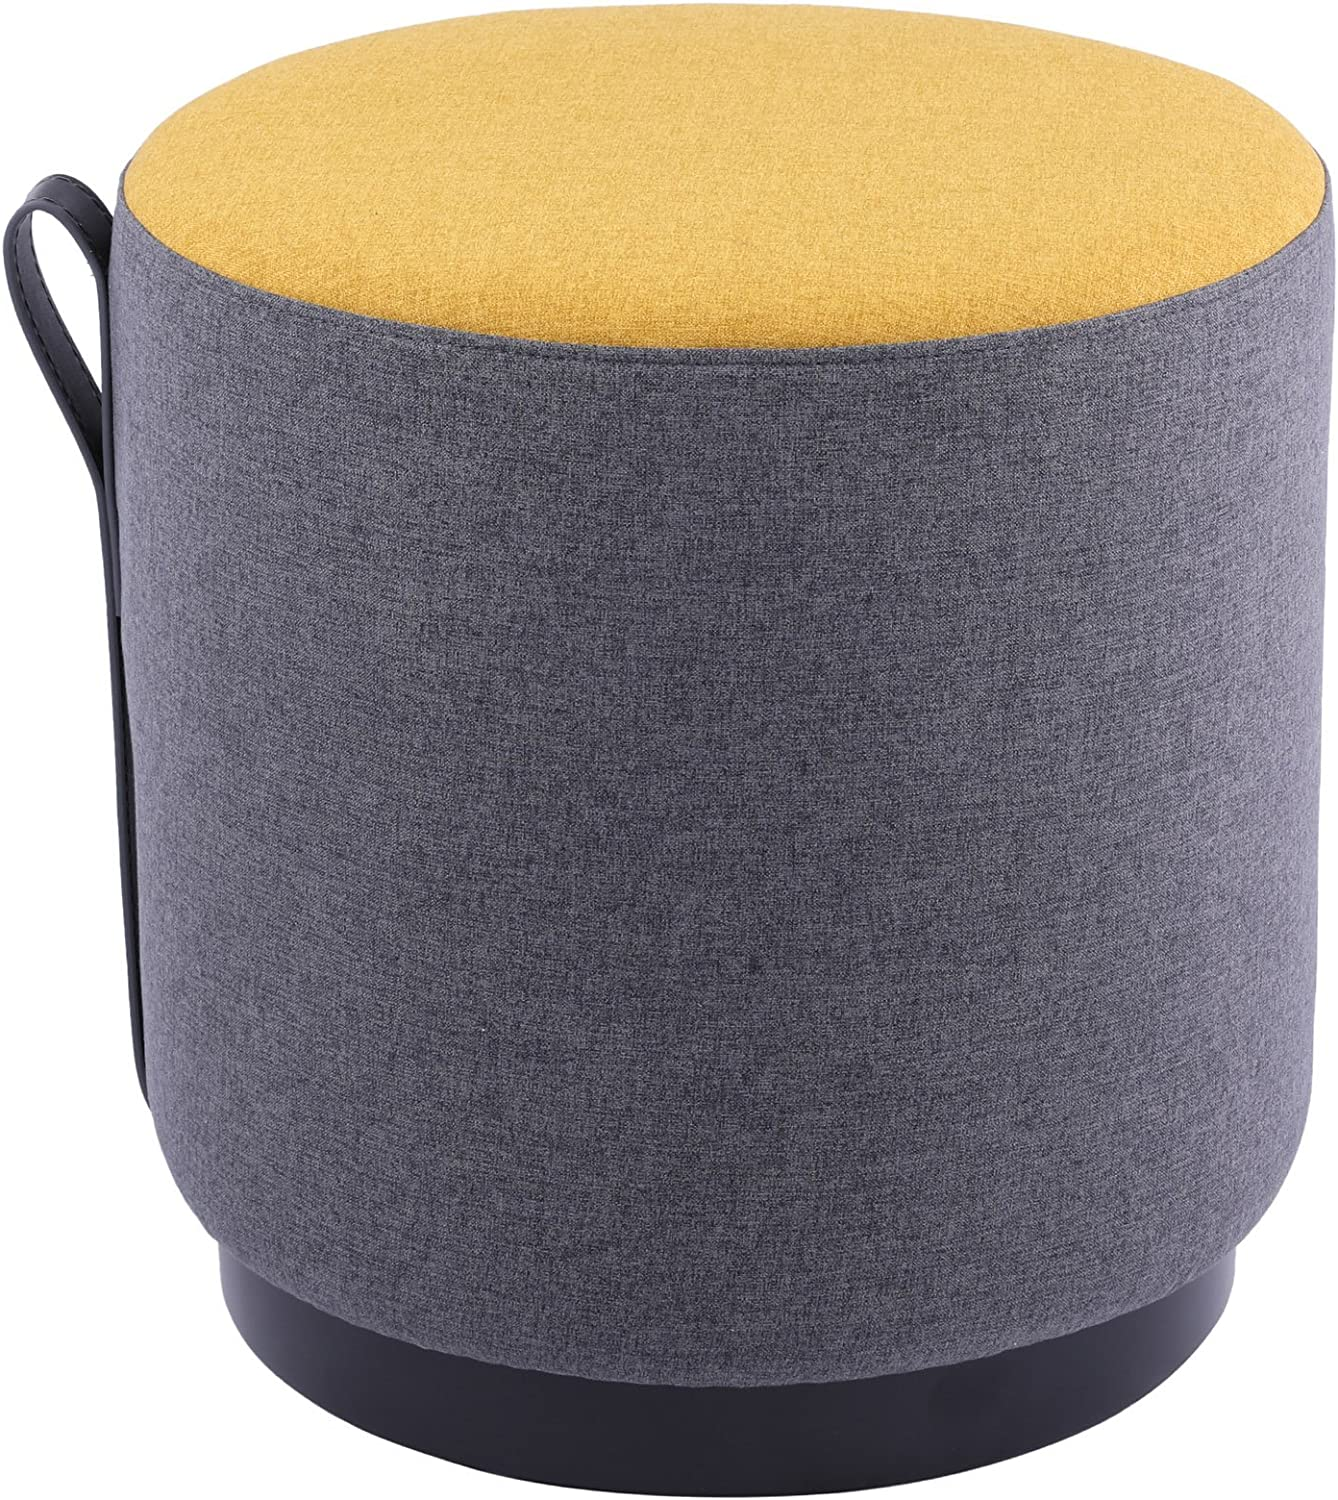 Sunon Round Pouf Ottoman Wooden Stool Clearance SALE Now on sale Limited time Leg Dia17x Small